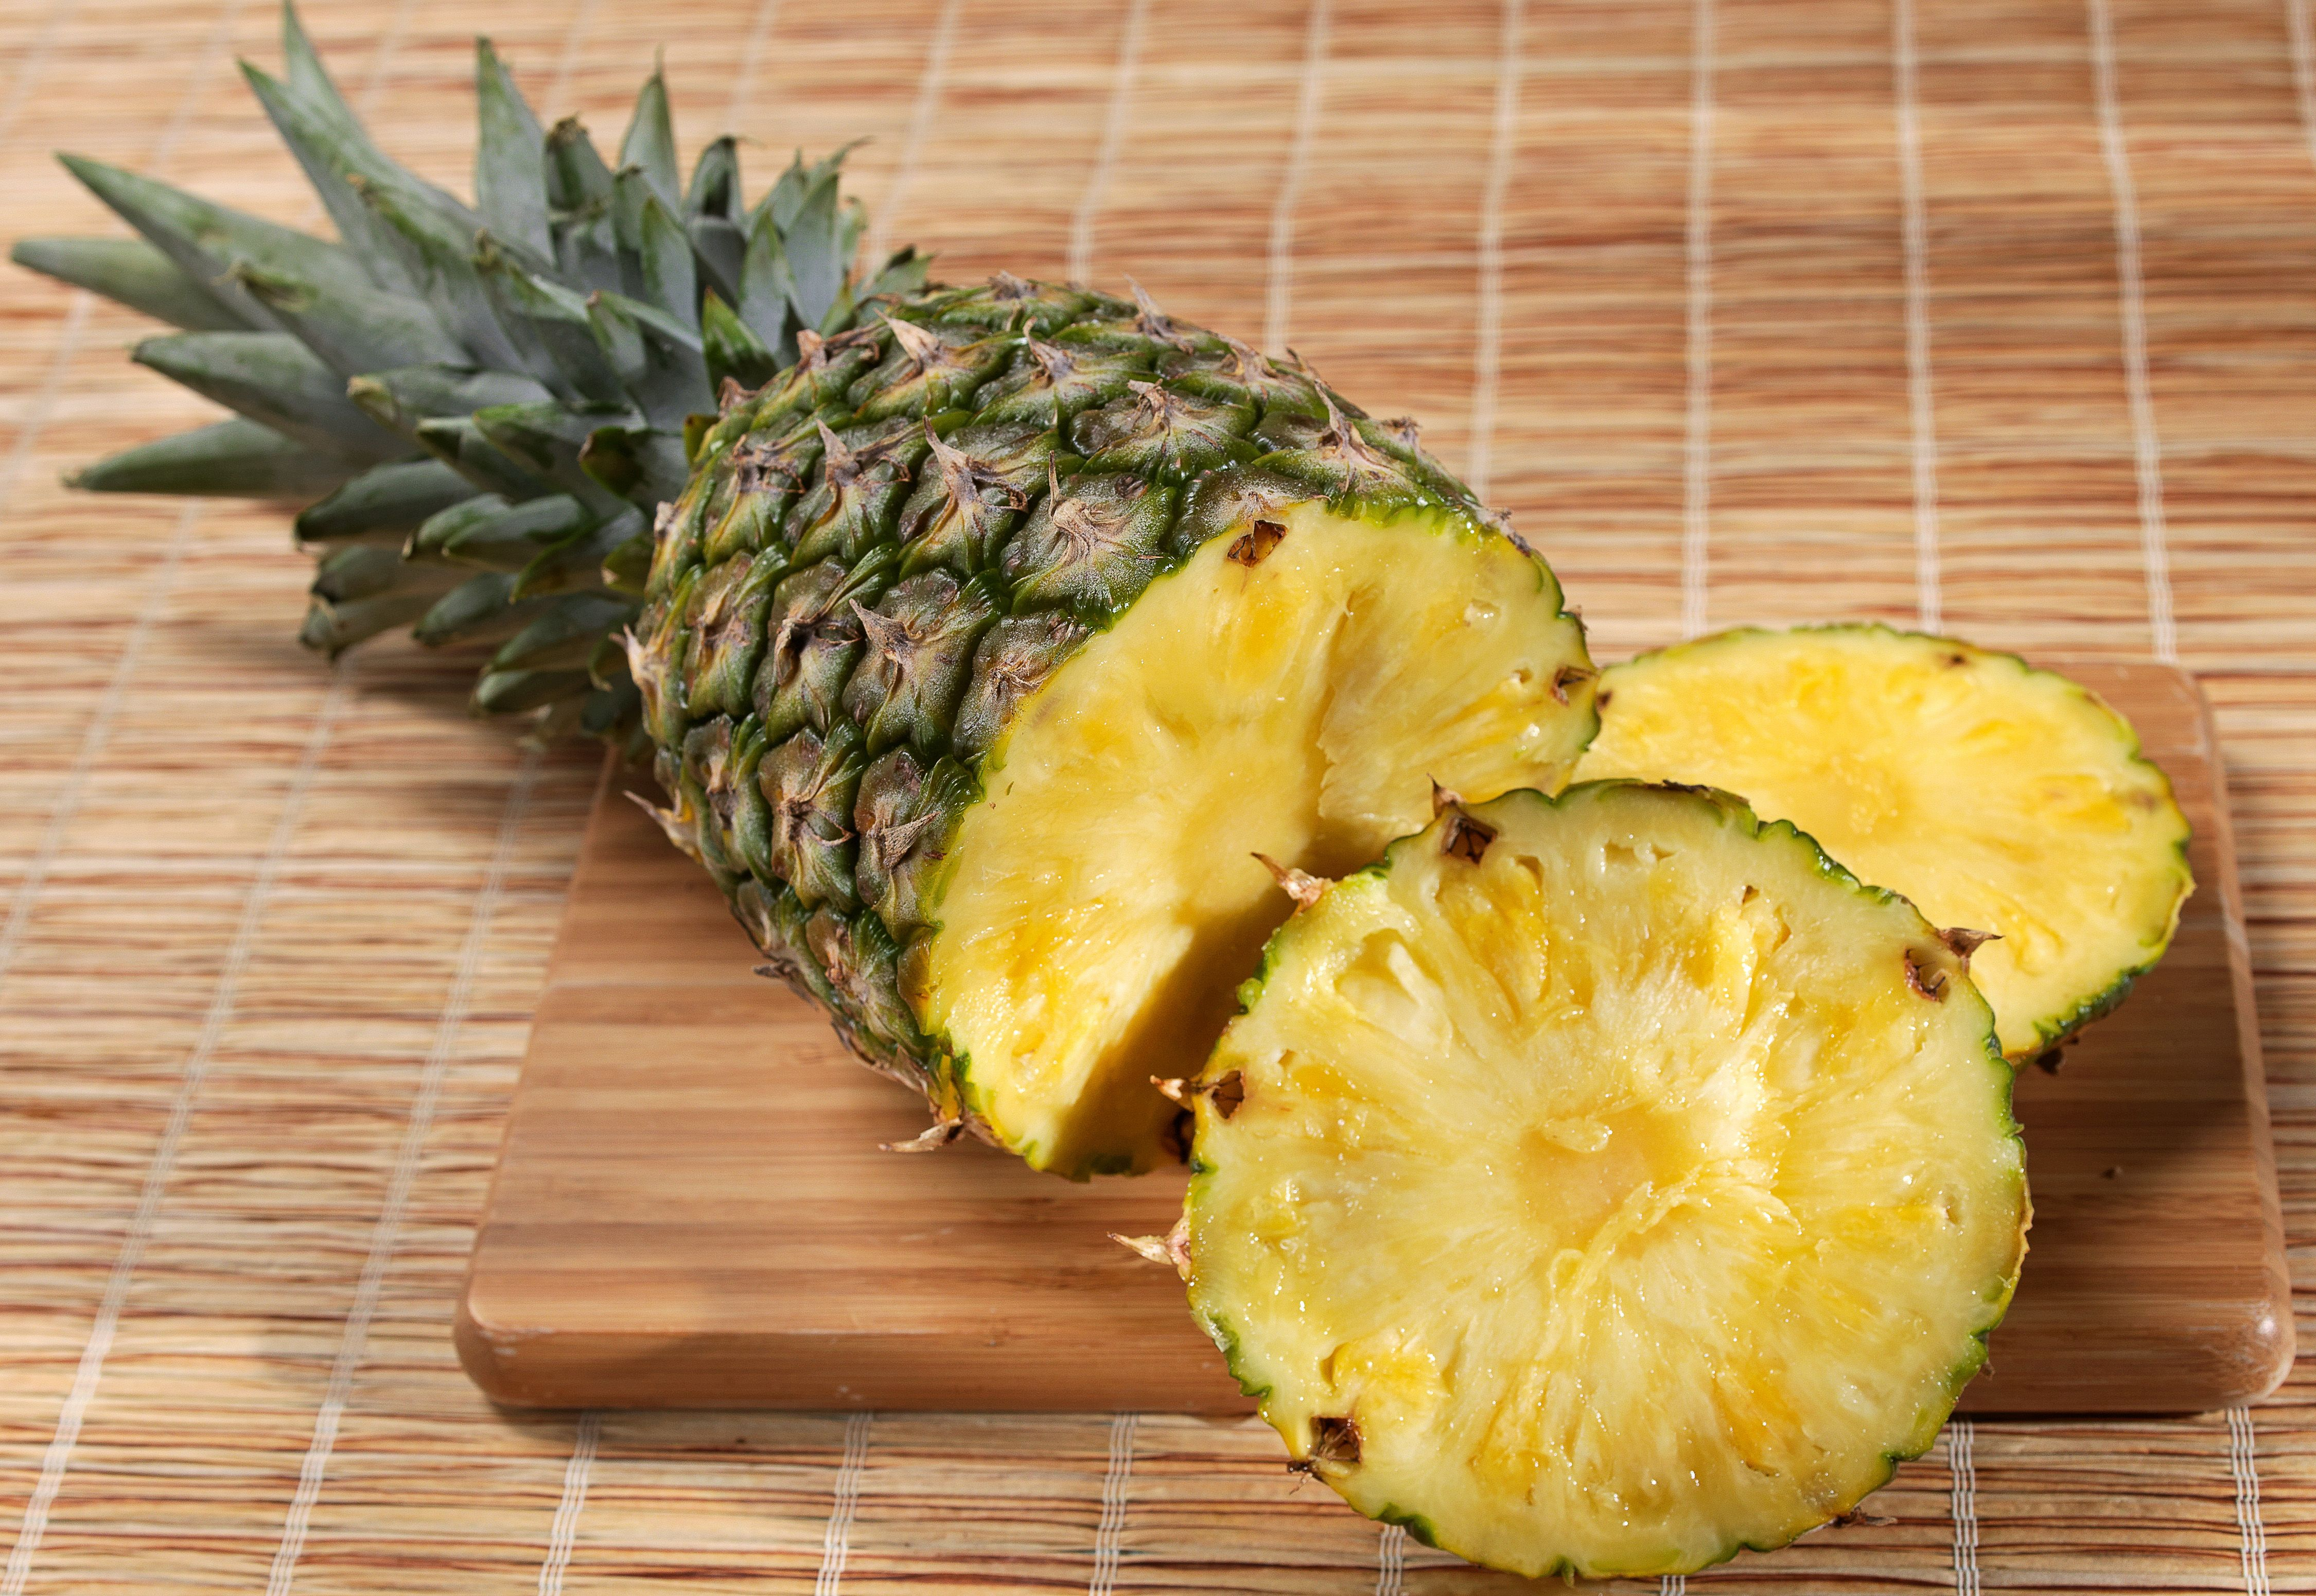 Pineapples have exceptional juiciness and a vibrant tropical flavor that balances the tastes of sweet and tart. They are second only to bananas as America's favorite tropical fruit. Pineapples two ways: Enjoy somerefreshing homemade pineapple juice This recipe calls for the pineapple skin and core, not the actual fruit. It's a healthy twist, and deliciousMore...